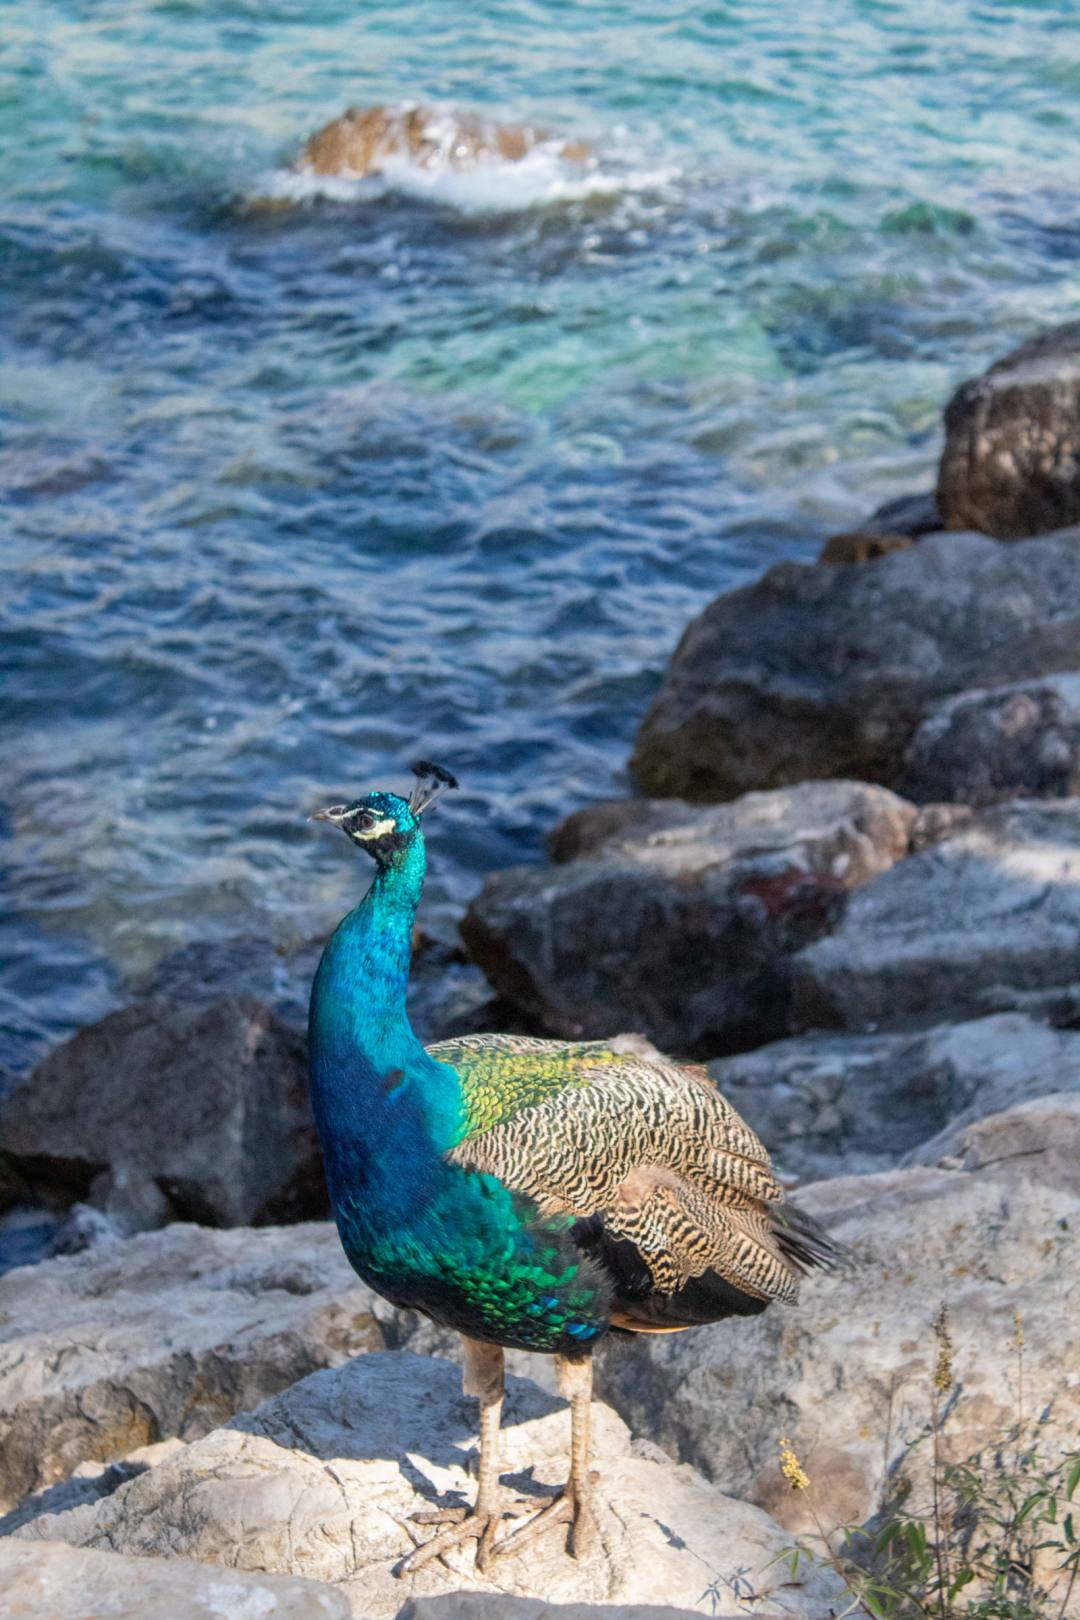 peacock in front of ocean rocks